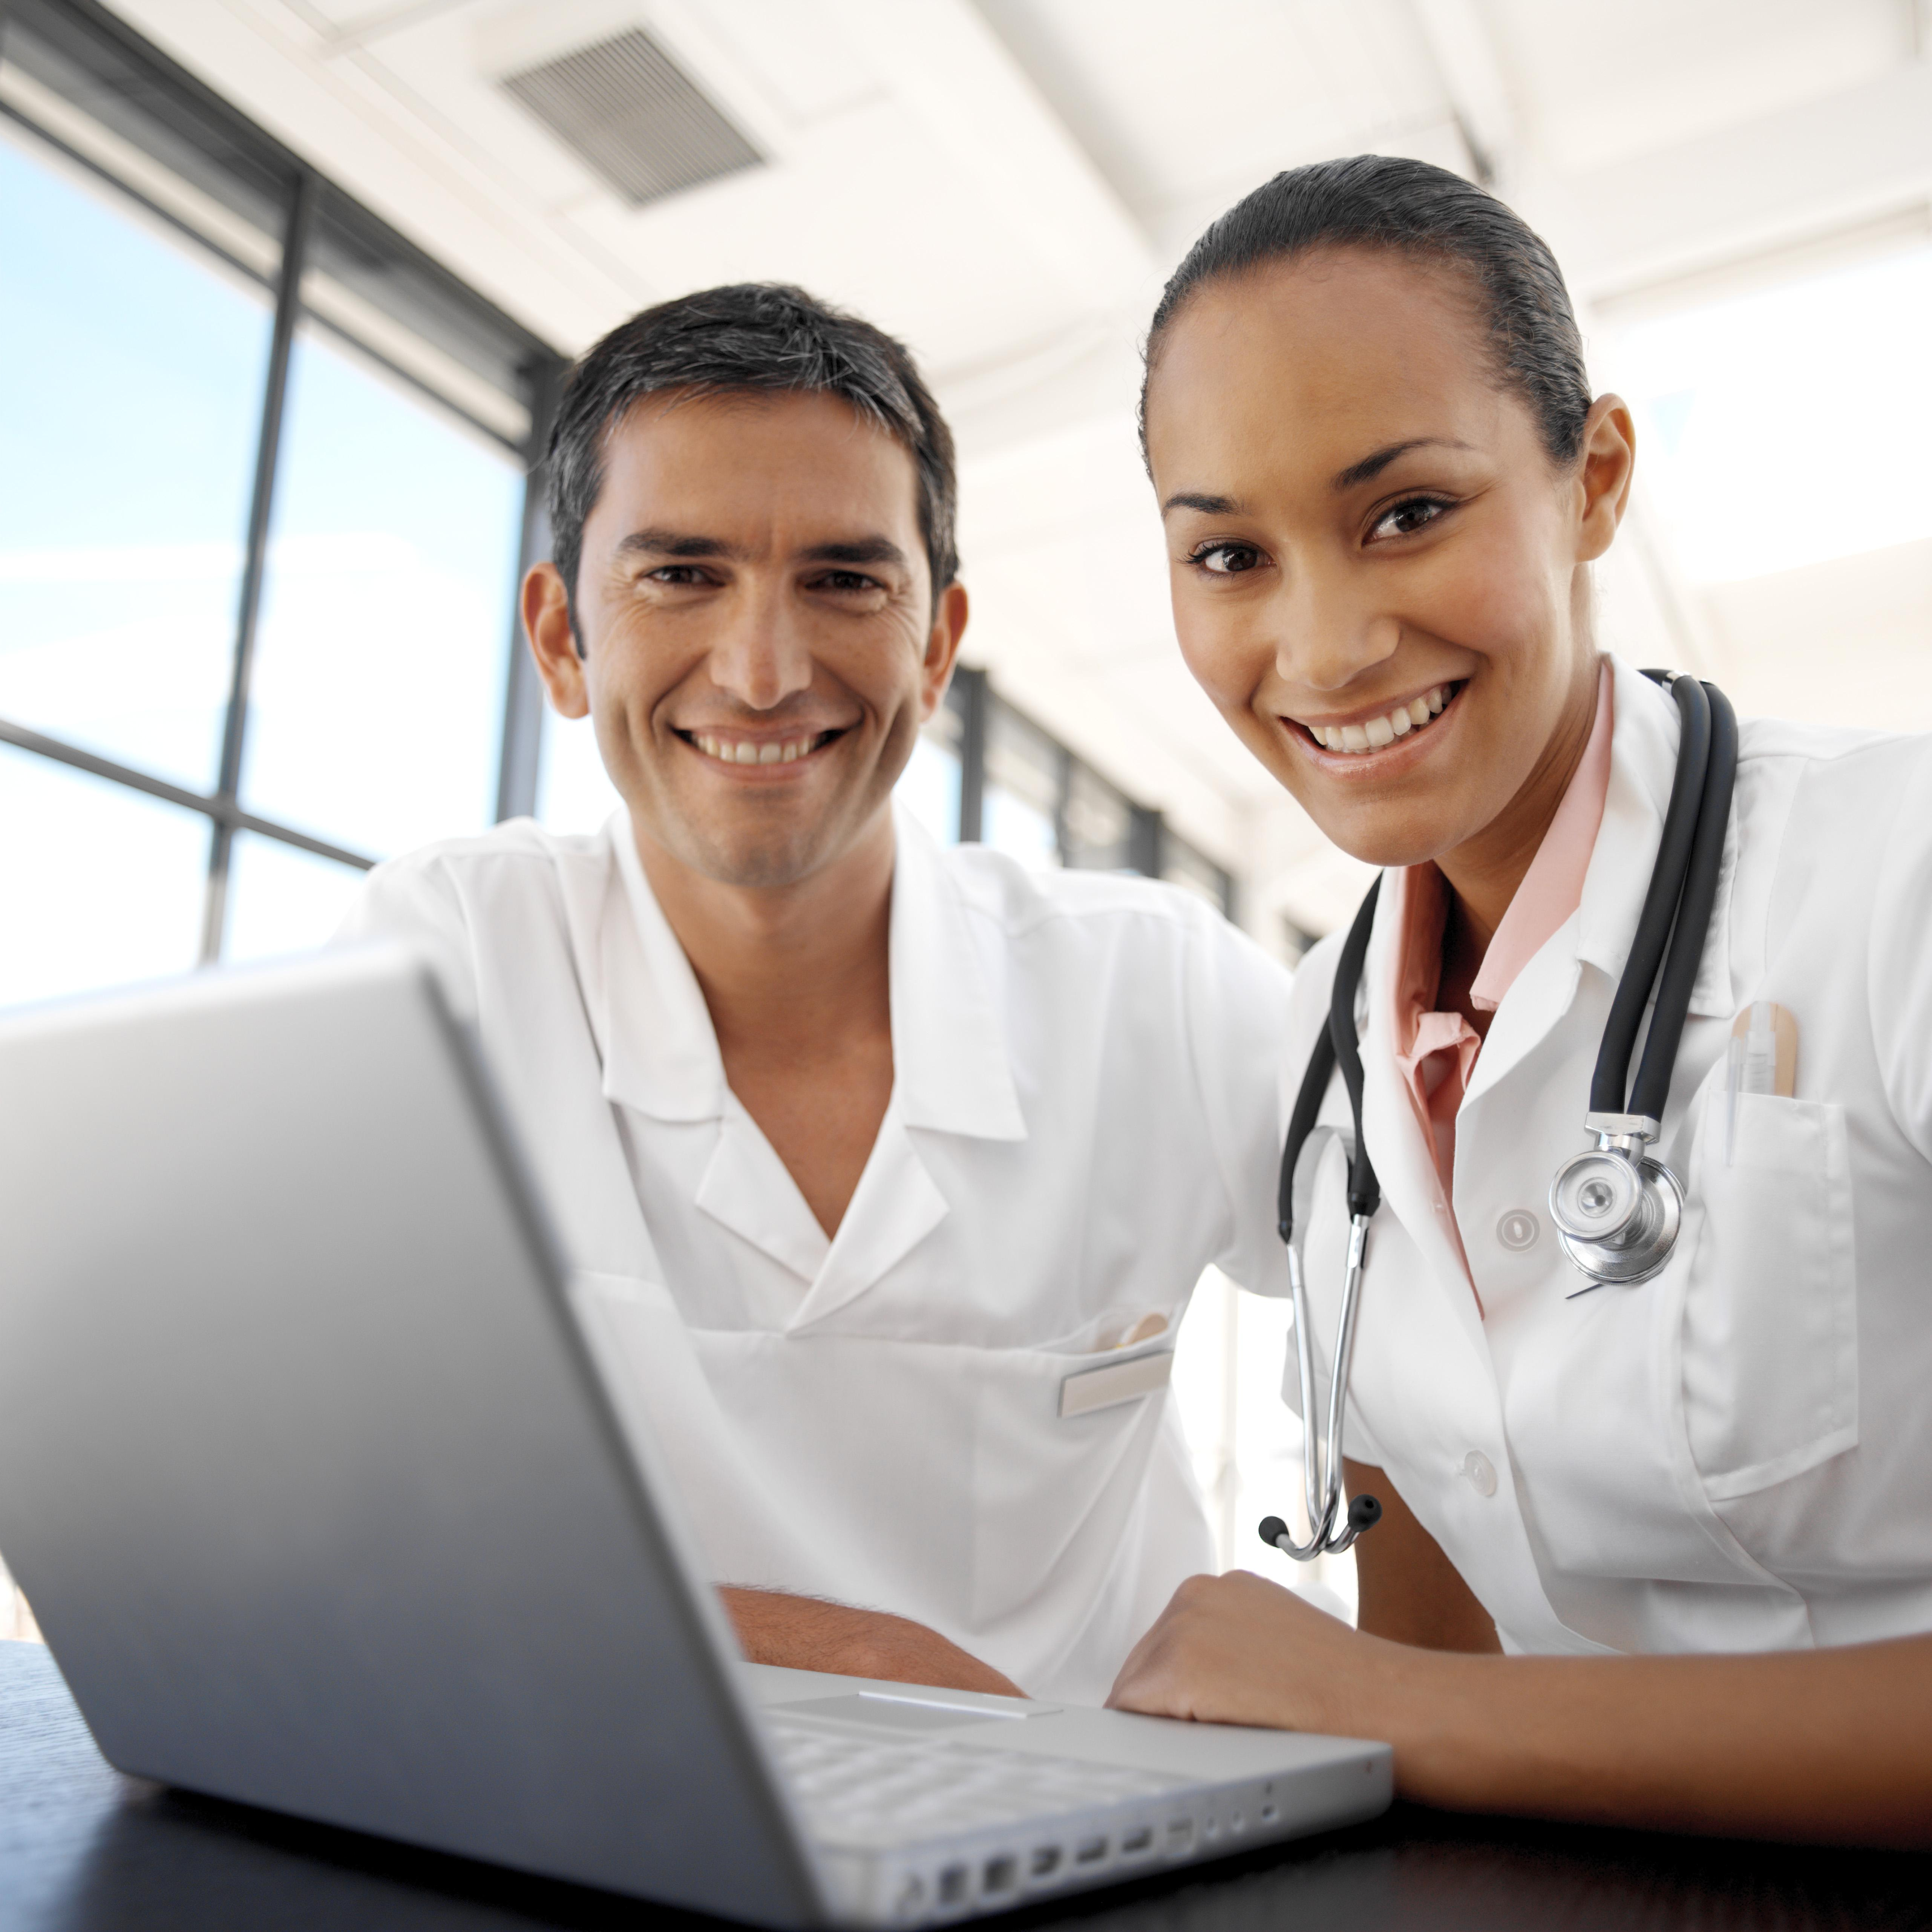 portrait of young medical personnel in front of a laptop